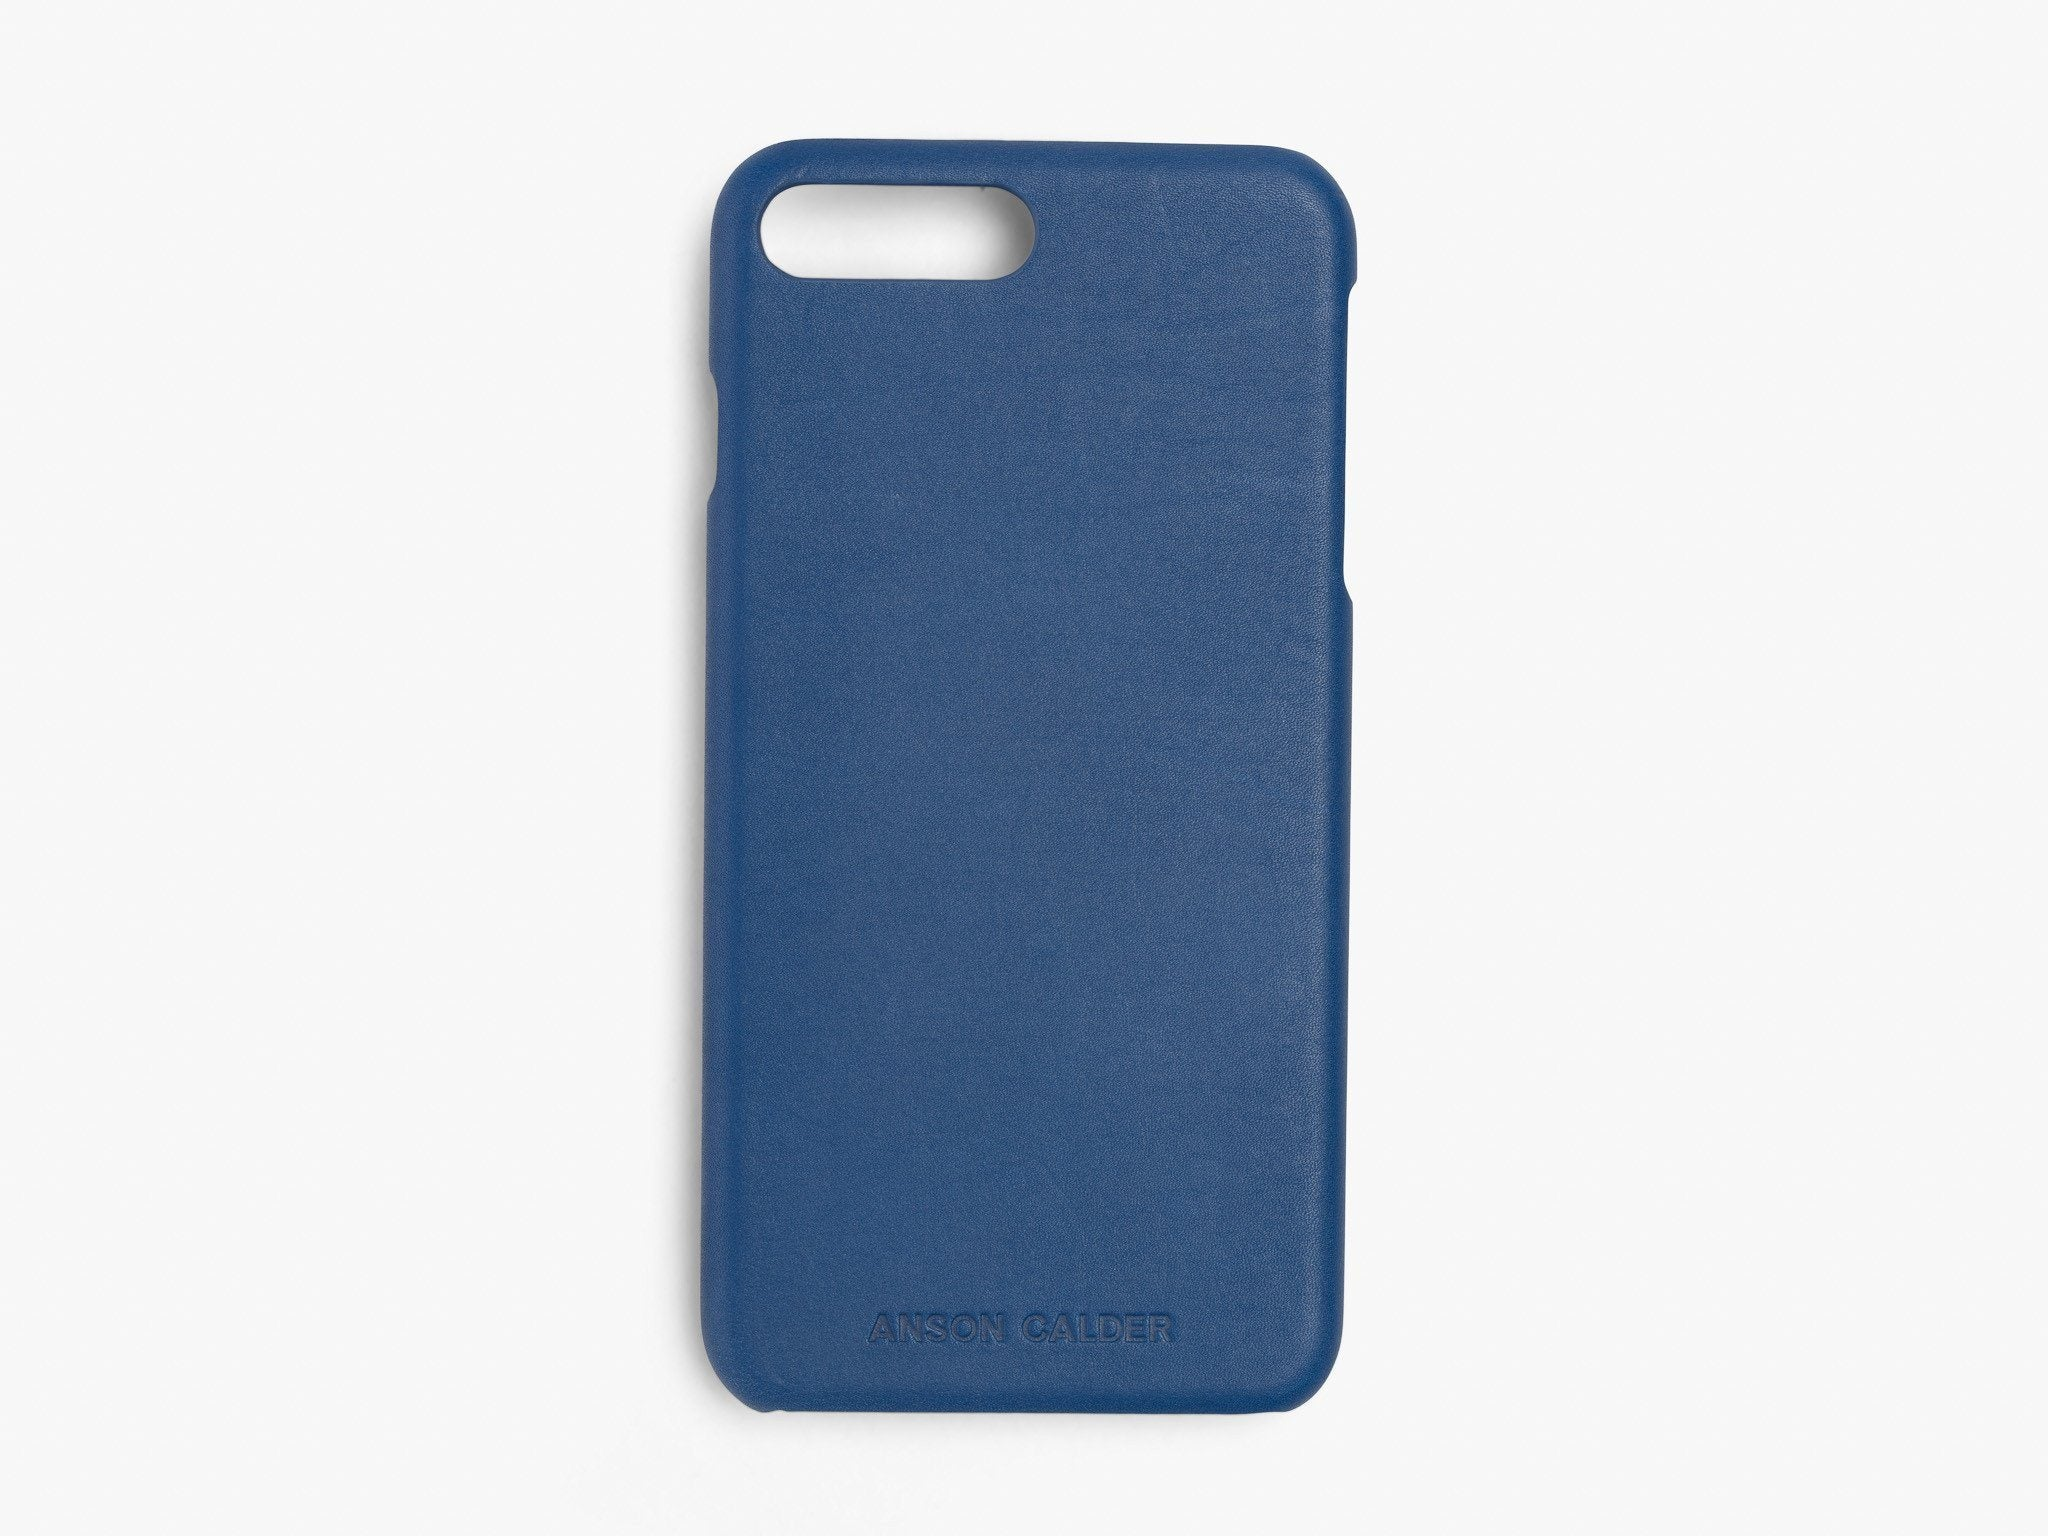 CALFSKIN iPHONE CASE CASES ANSON CALDER  !iphone8plus *hover _Cobalt